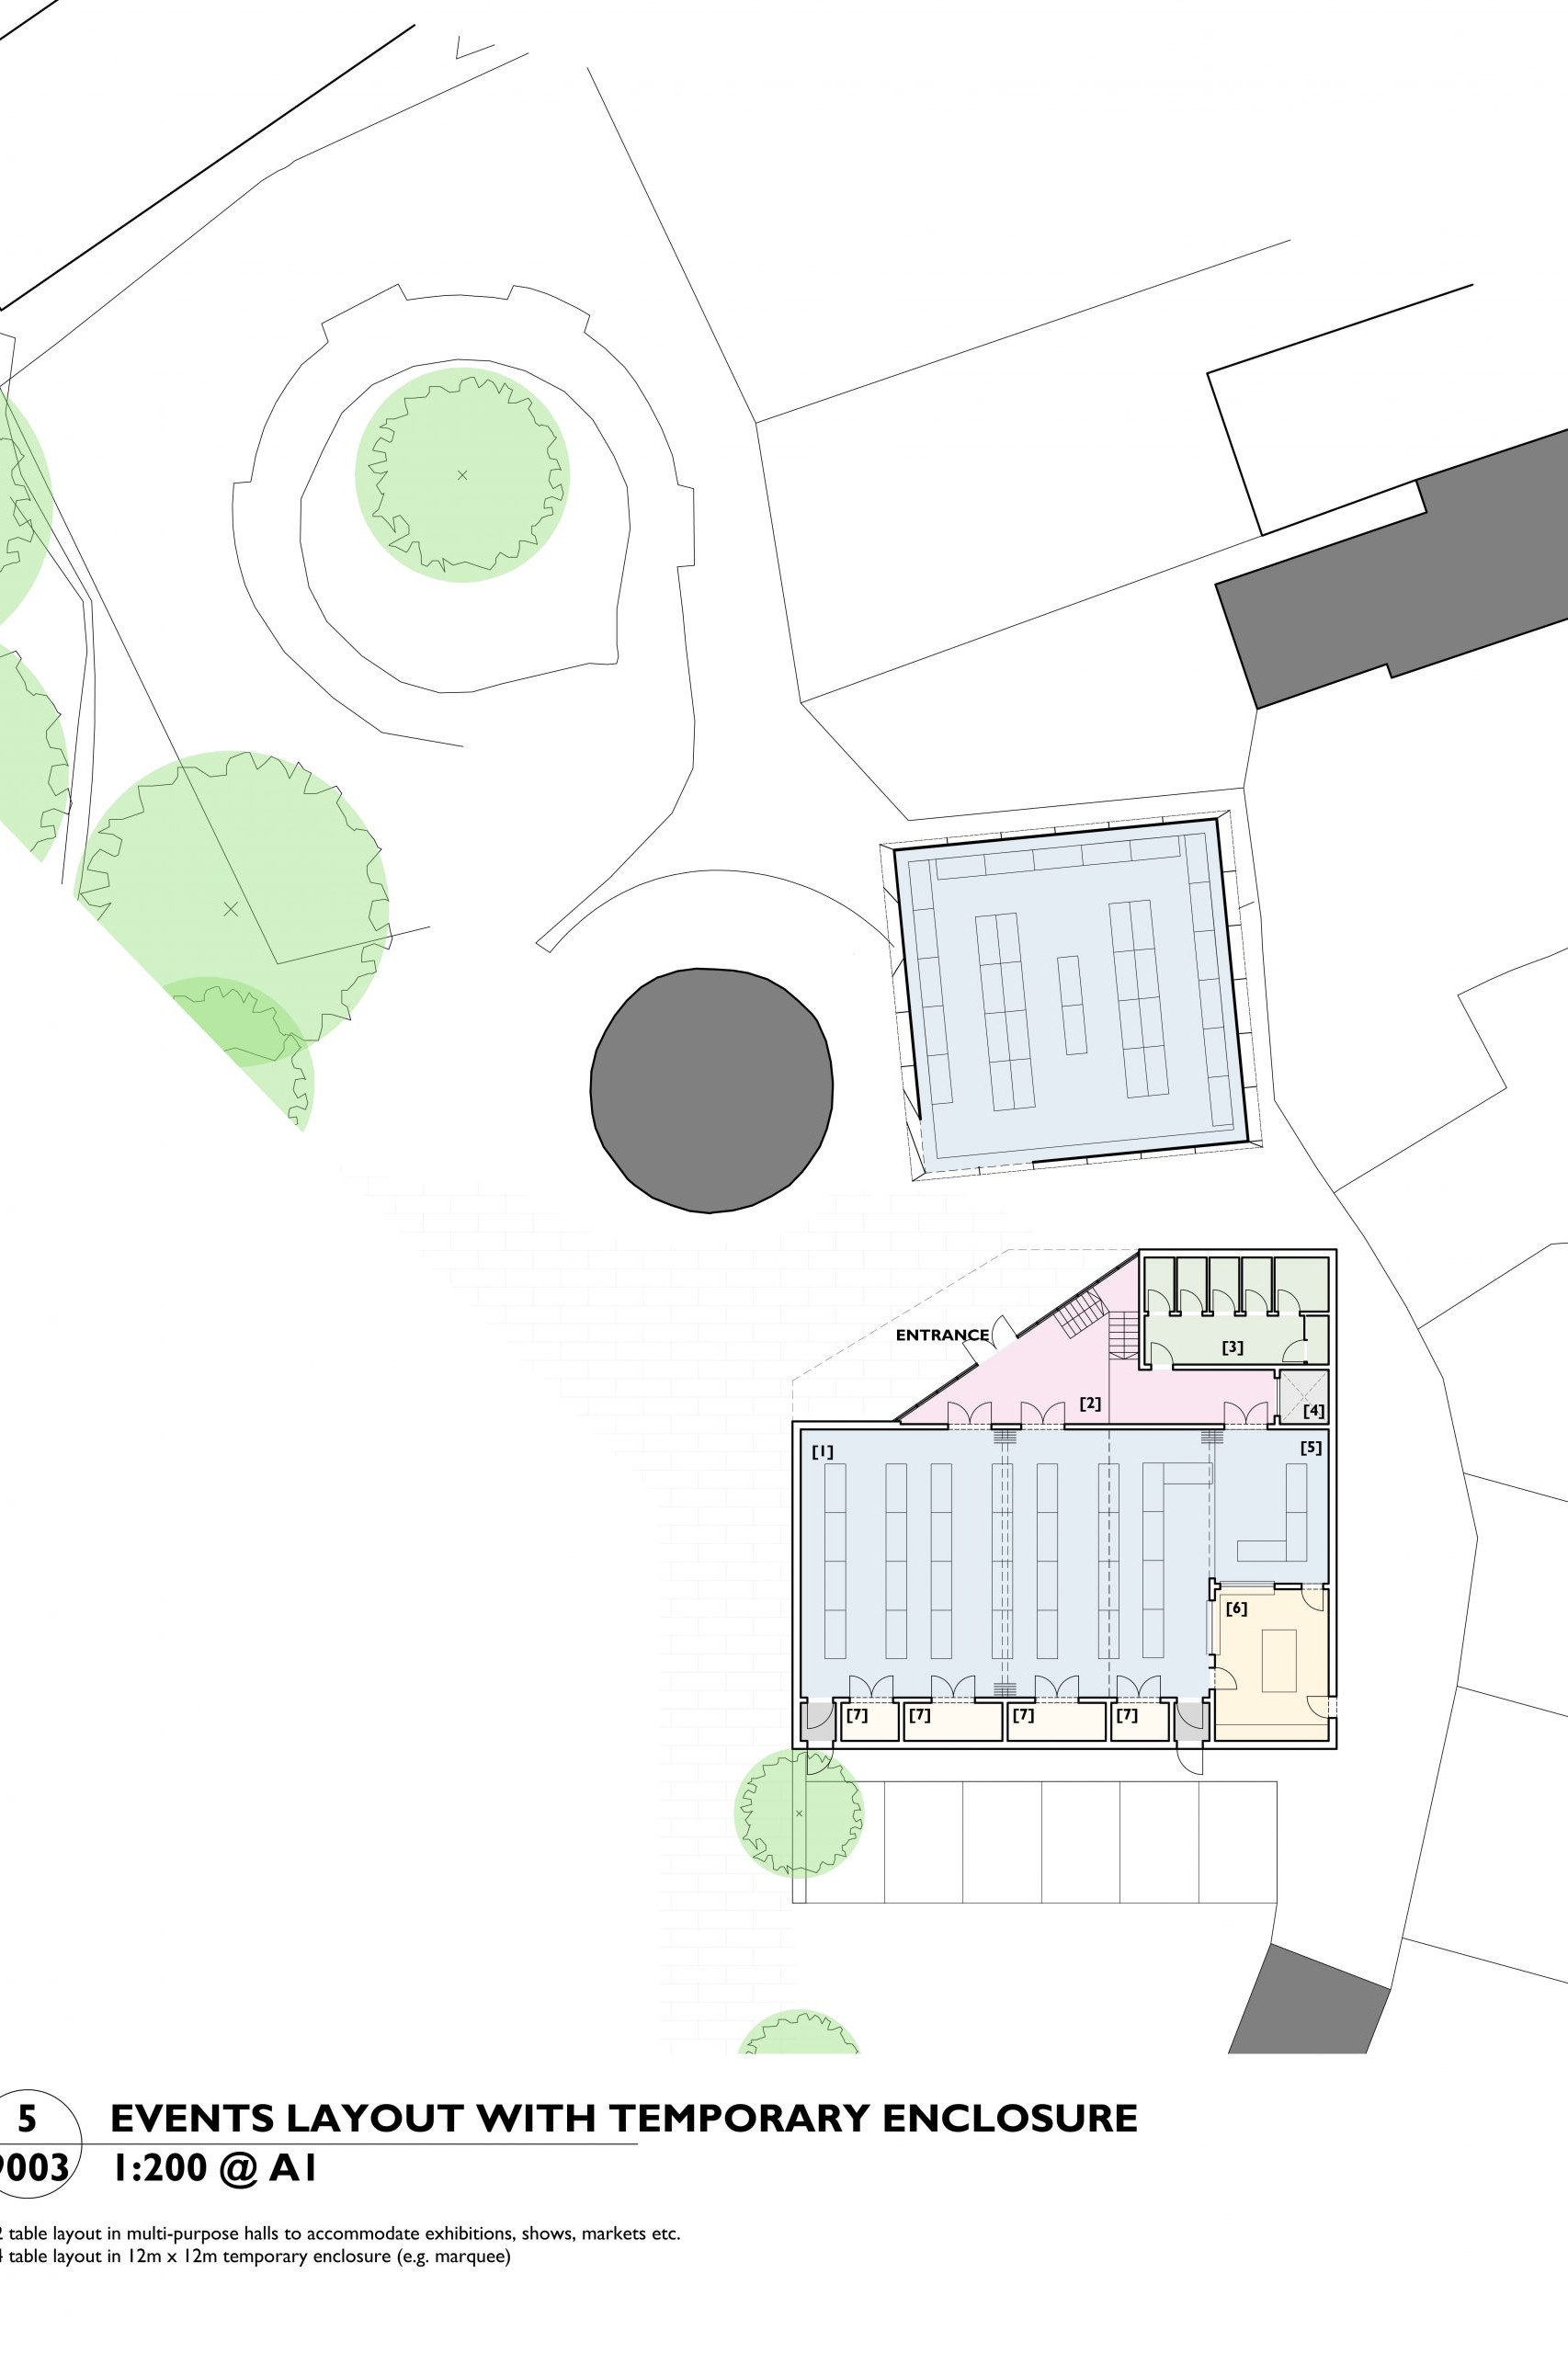 Image showing the events layout plan of the Mill Arts Centre